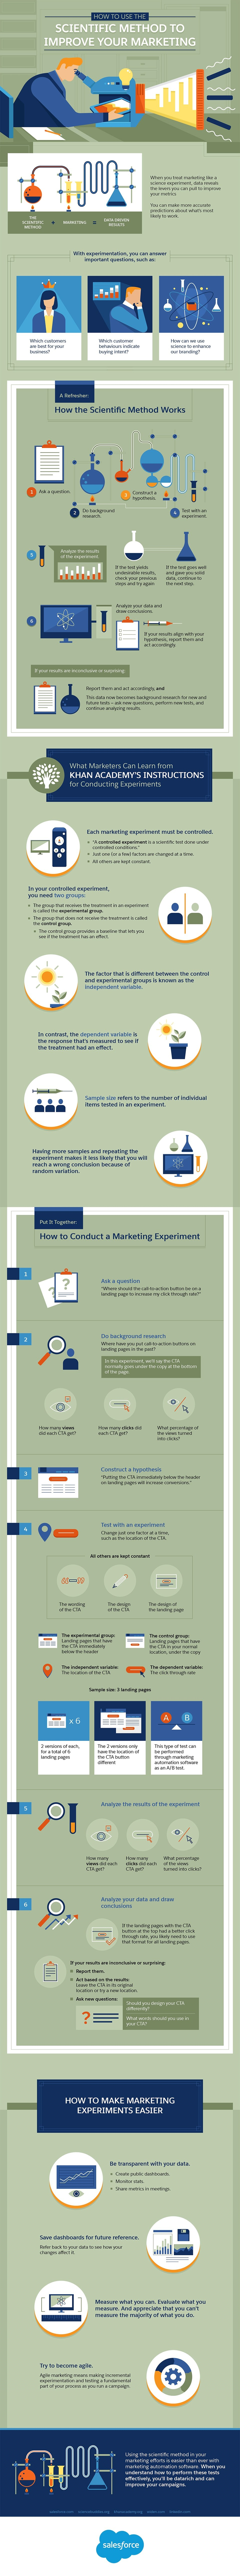 Infographic demonstrating how to mimic the scientific method in your marking strategy to improve your reach.